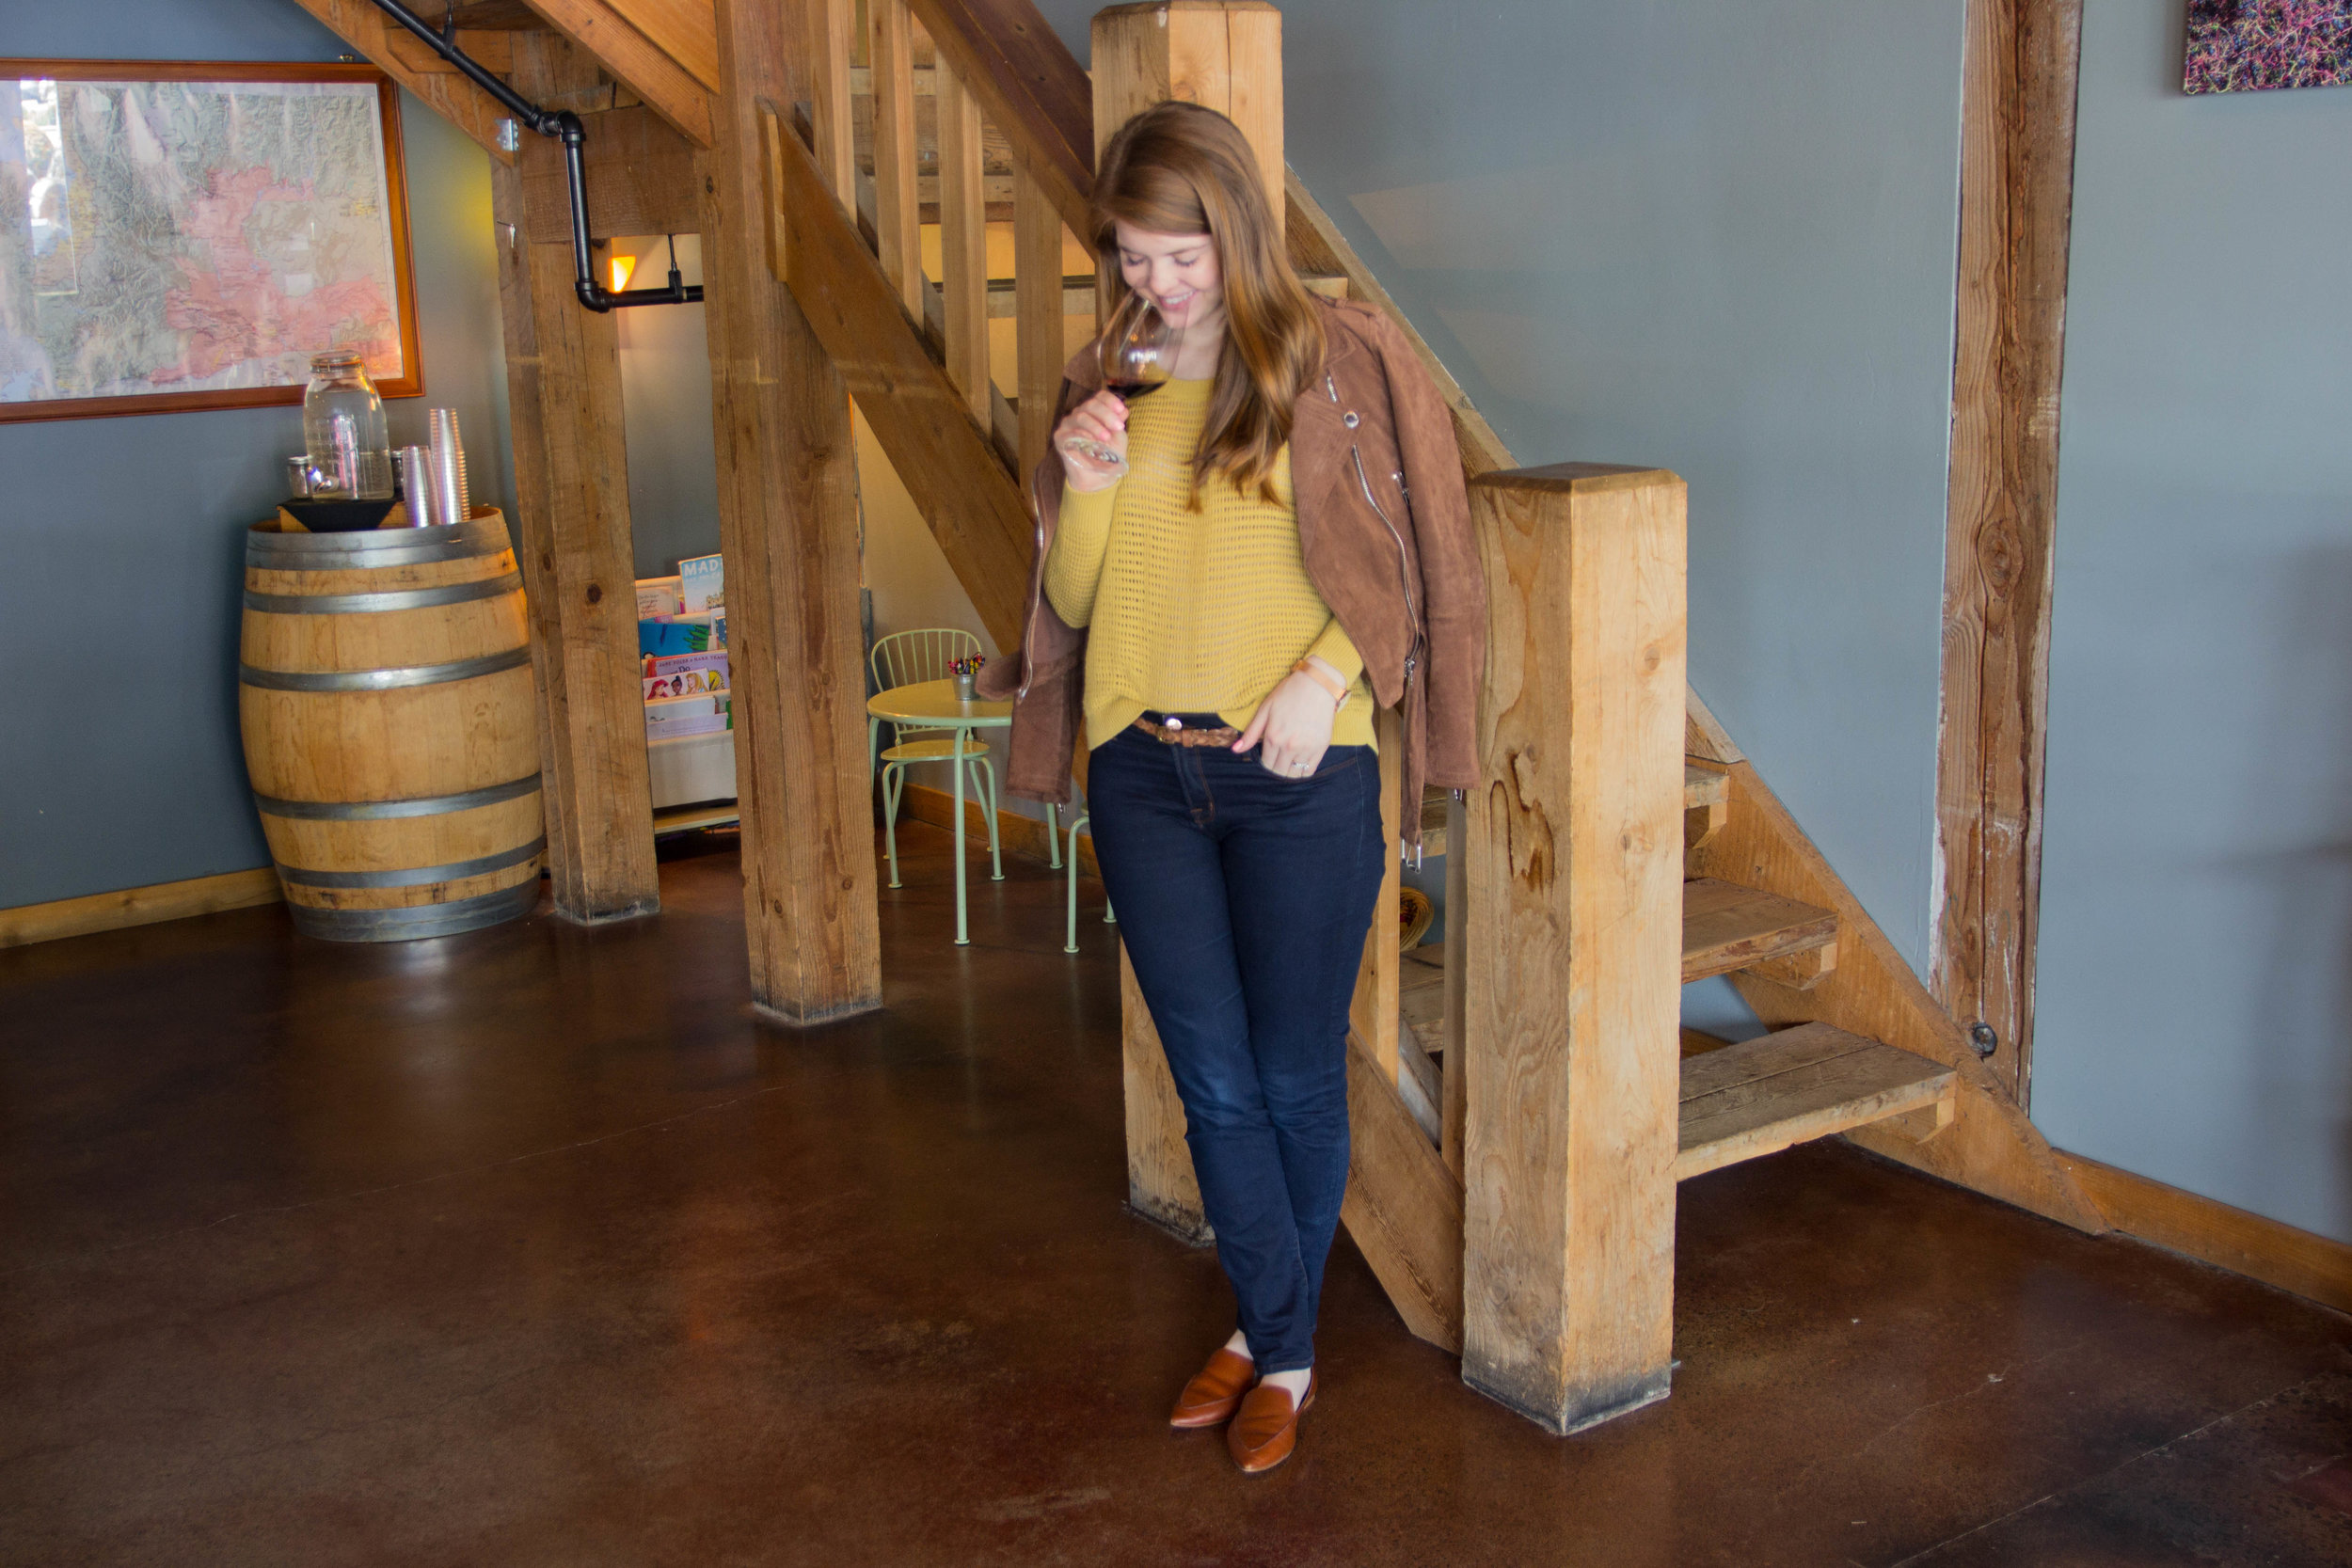 madewell sweater, blanknyc moto jacket, j brand jeans, wine tasting in woodinville, washington, seattle, wineries, purple cafe and wine bar,  mark ryan winery, sparkman cellars, elevation cellars, pondera winery, the grange cafe, duvall, c.c.'s 2.0 espresso and ice cream